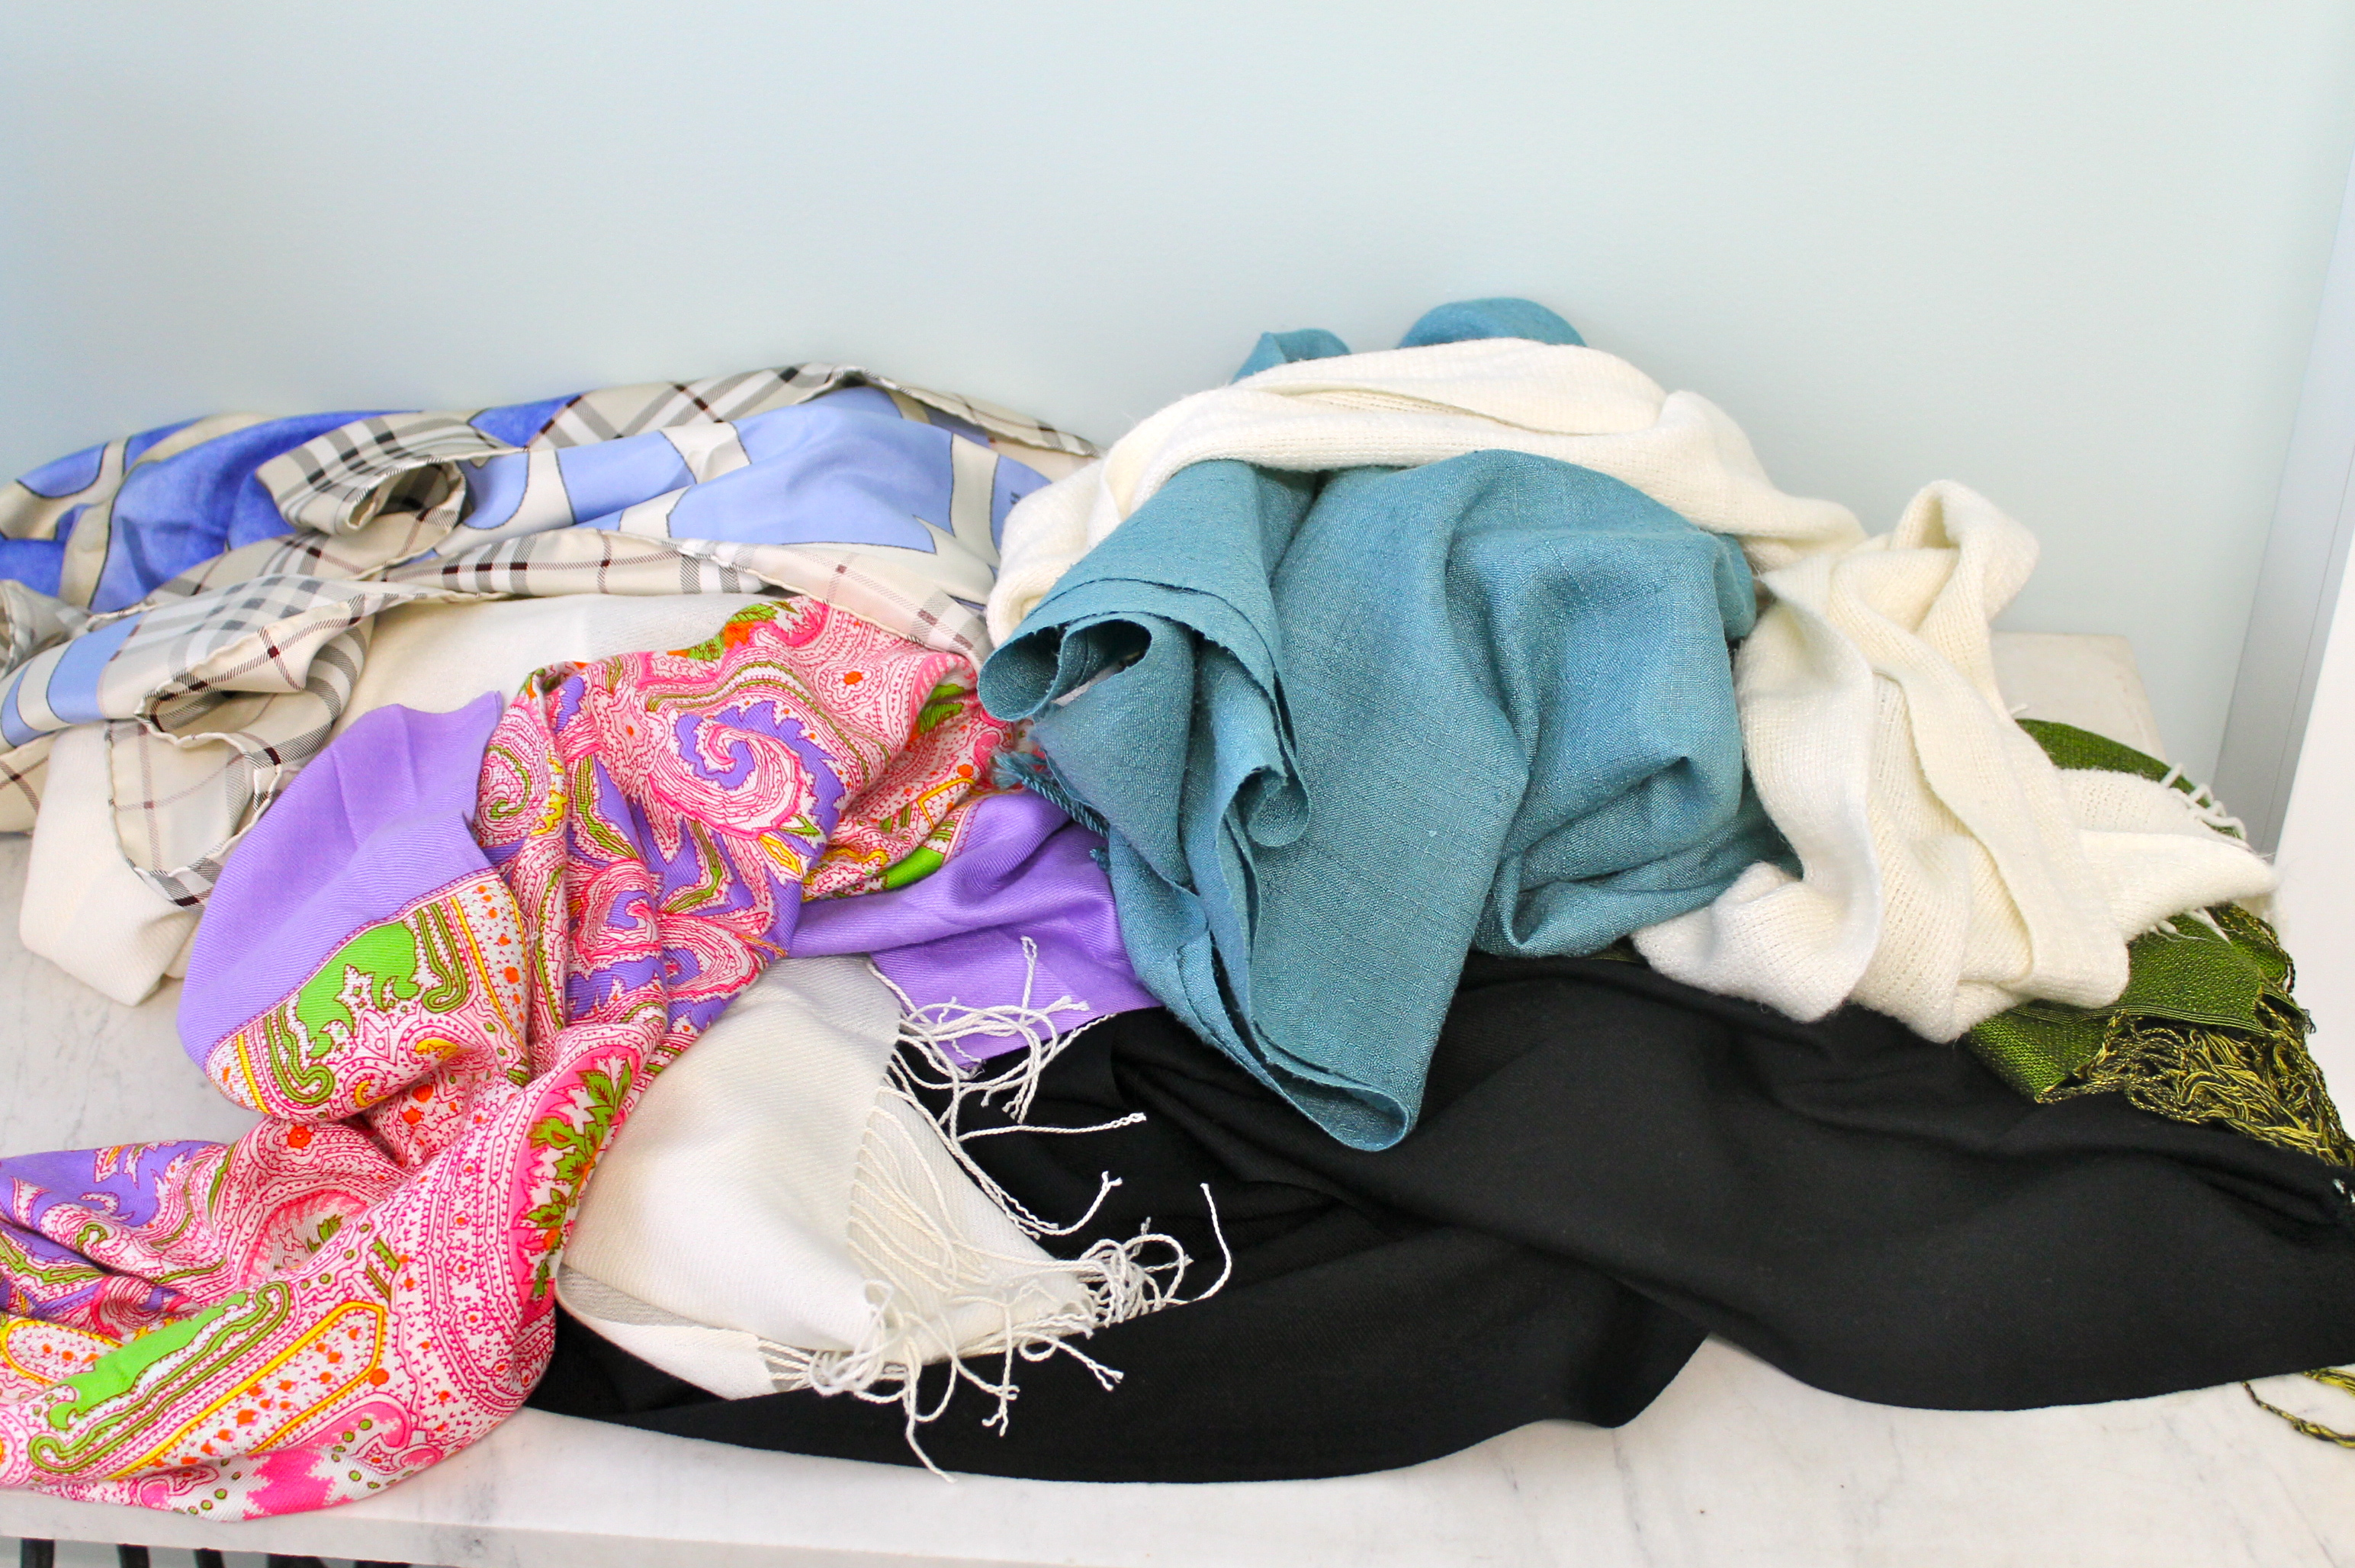 IMG 1059 - How To Organize Your Scarves